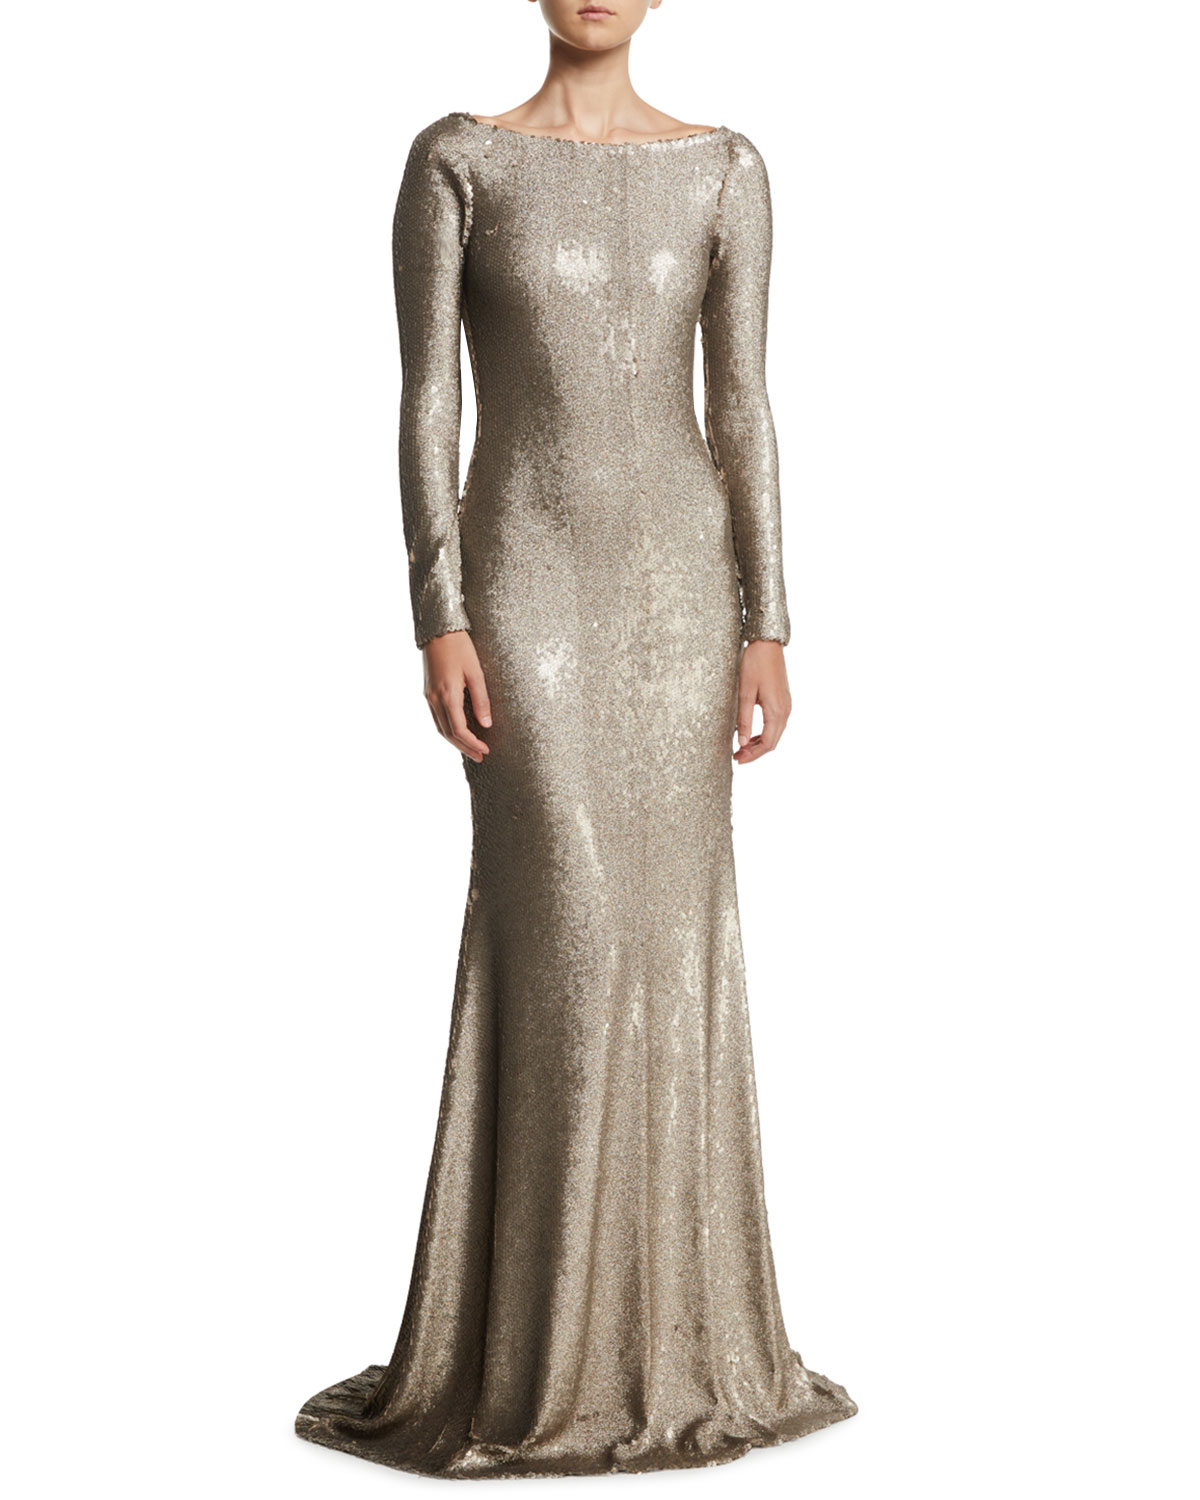 Naeem Khan Cowl Back Boat Neck Long Sleeve Fitted Sequin Evening